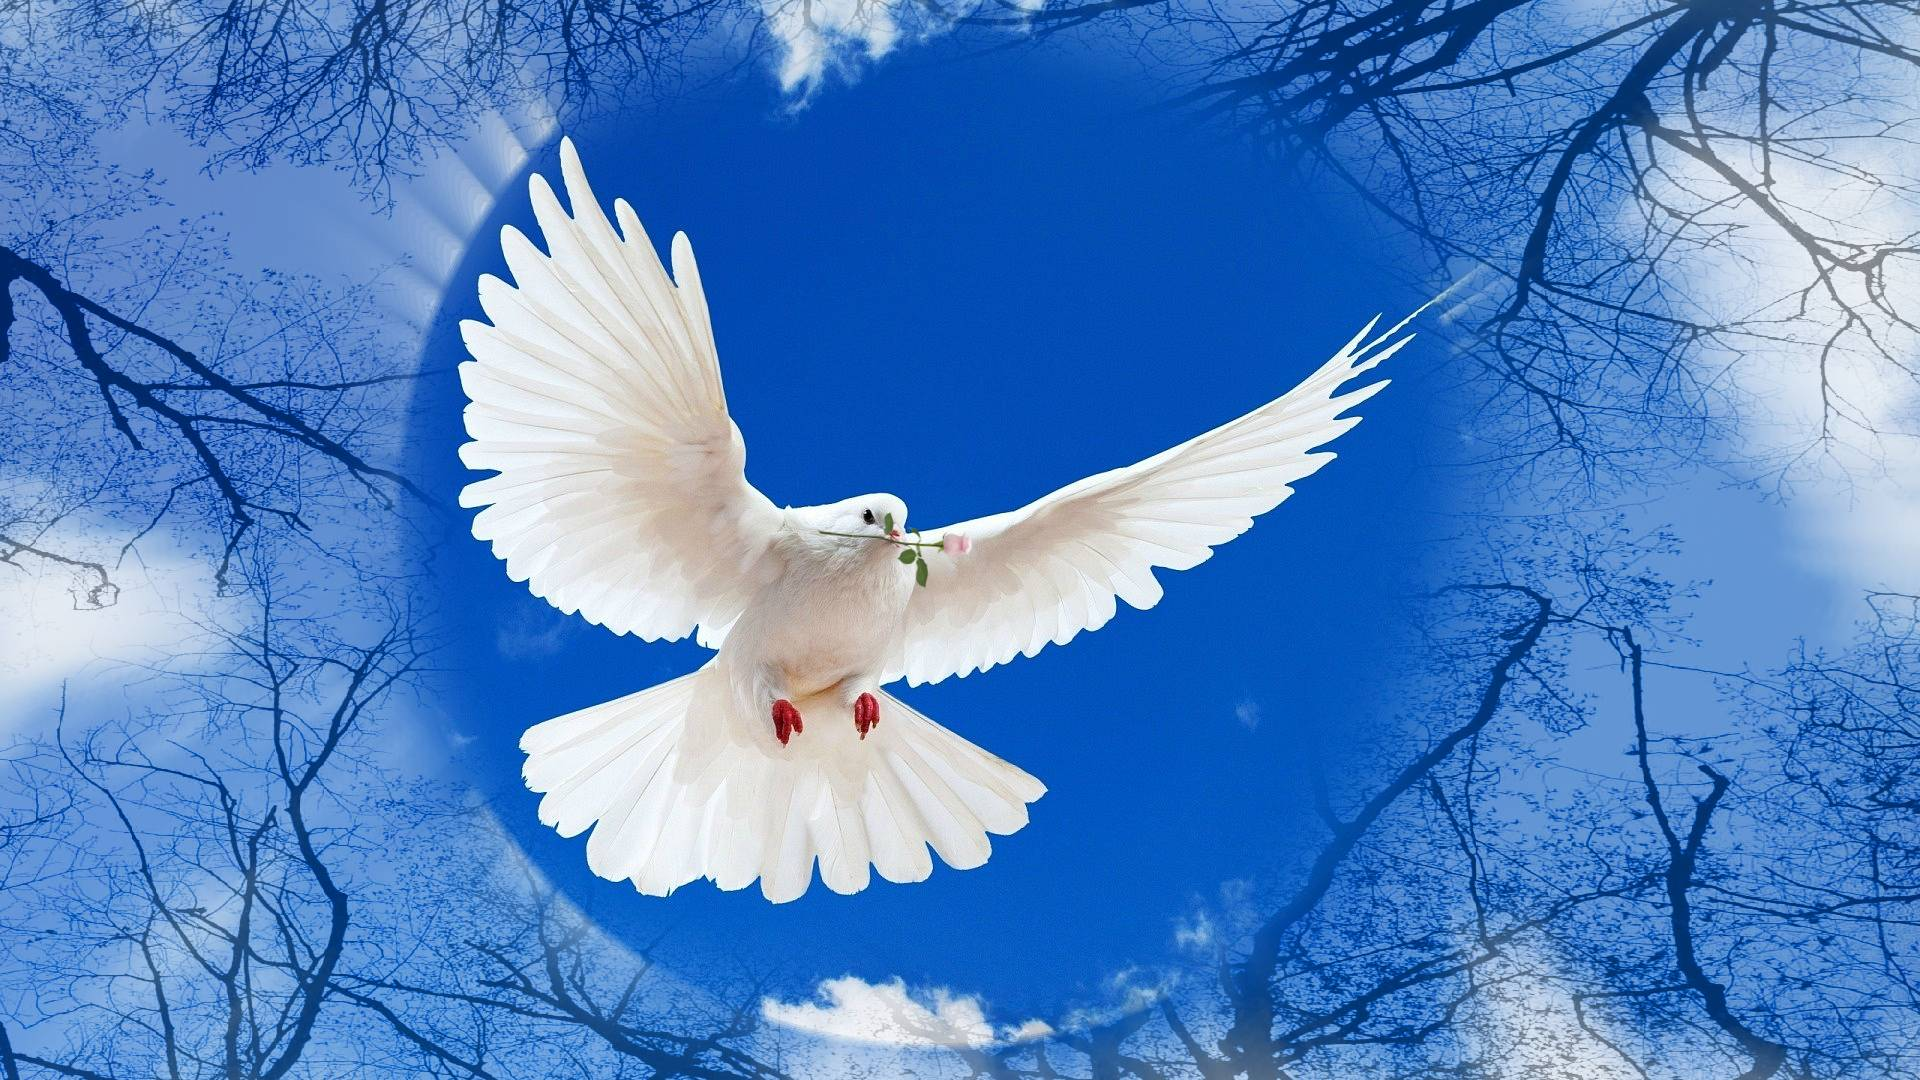 Love Dove Beautiful Wallpaper : White Dove Wallpapers - Wallpaper cave